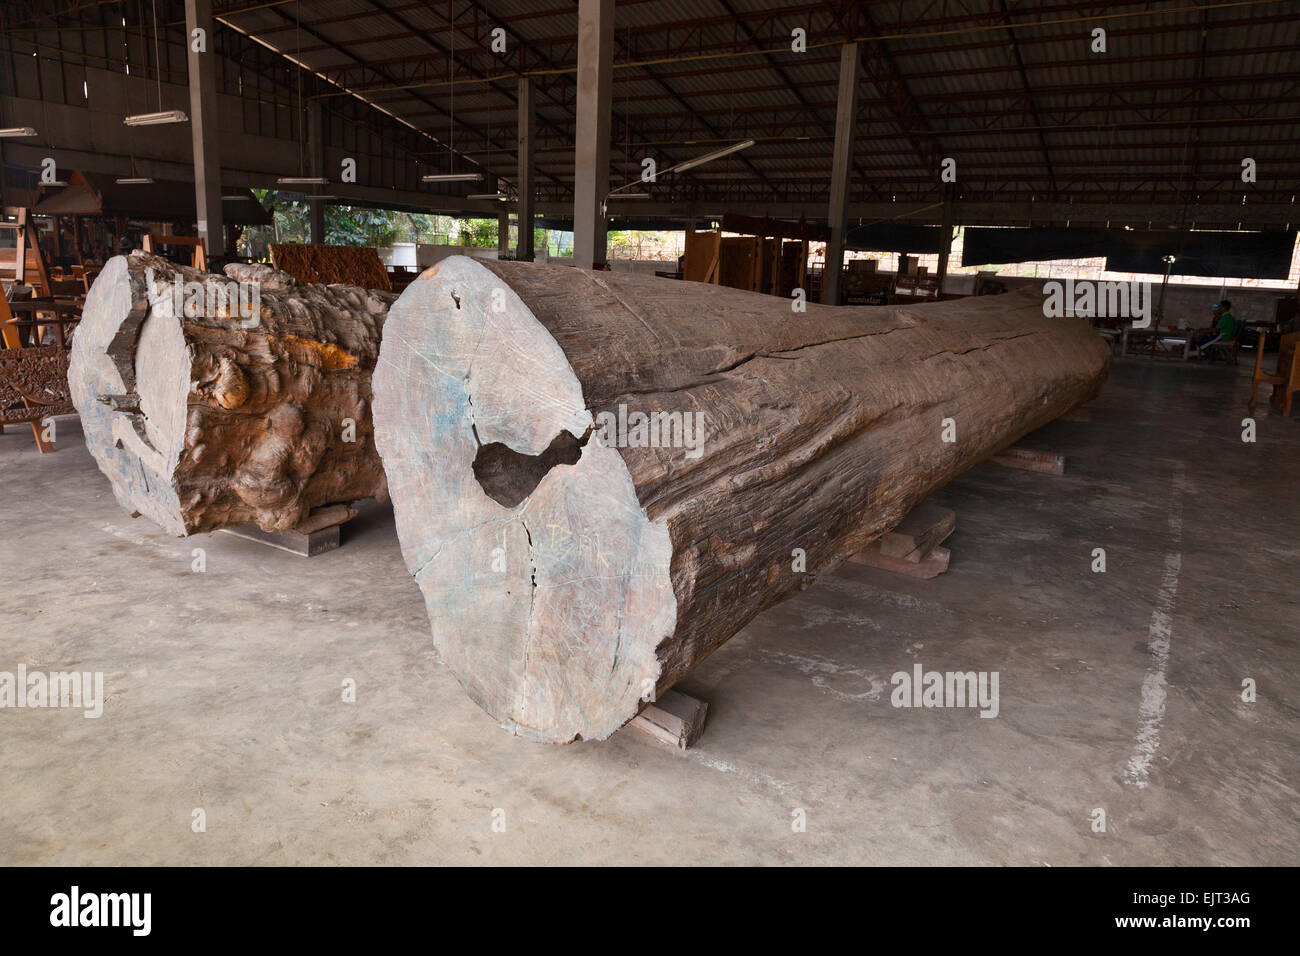 Rosewood (left) and teak (right) logs waiting to be cut and processed at a fine furniture workshop, Chiang Mai, - Stock Image